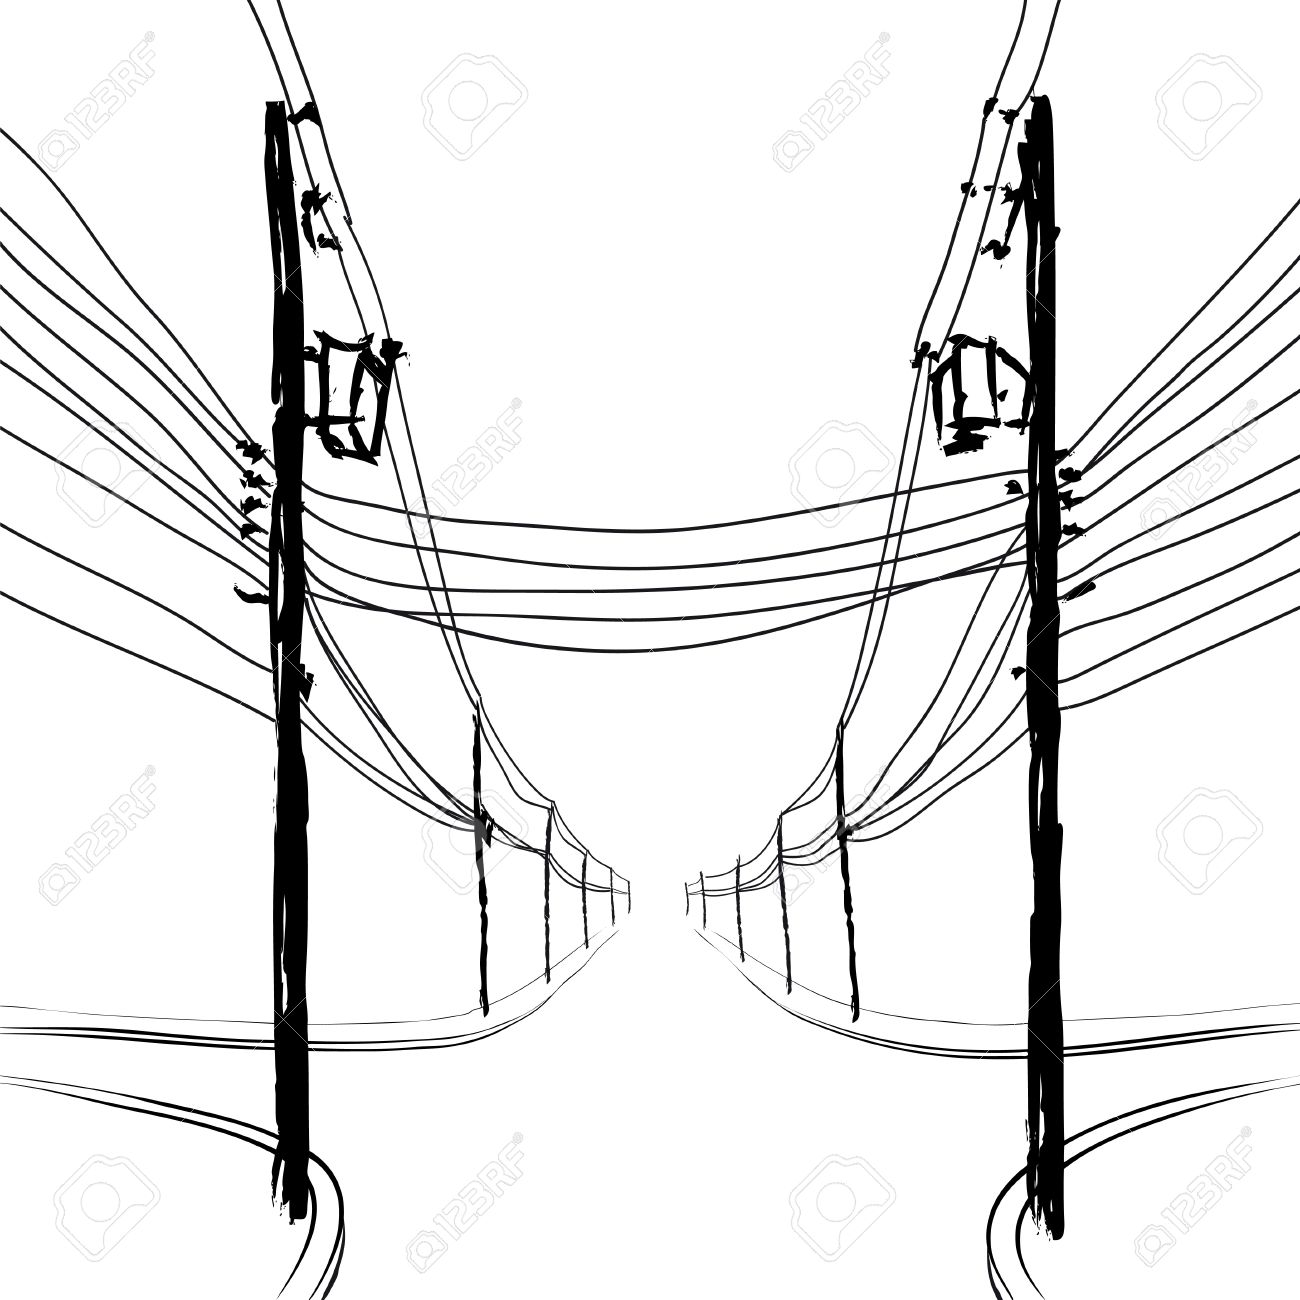 1300x1300 Poles With Wires Royalty Free Cliparts, Vectors, And Stock